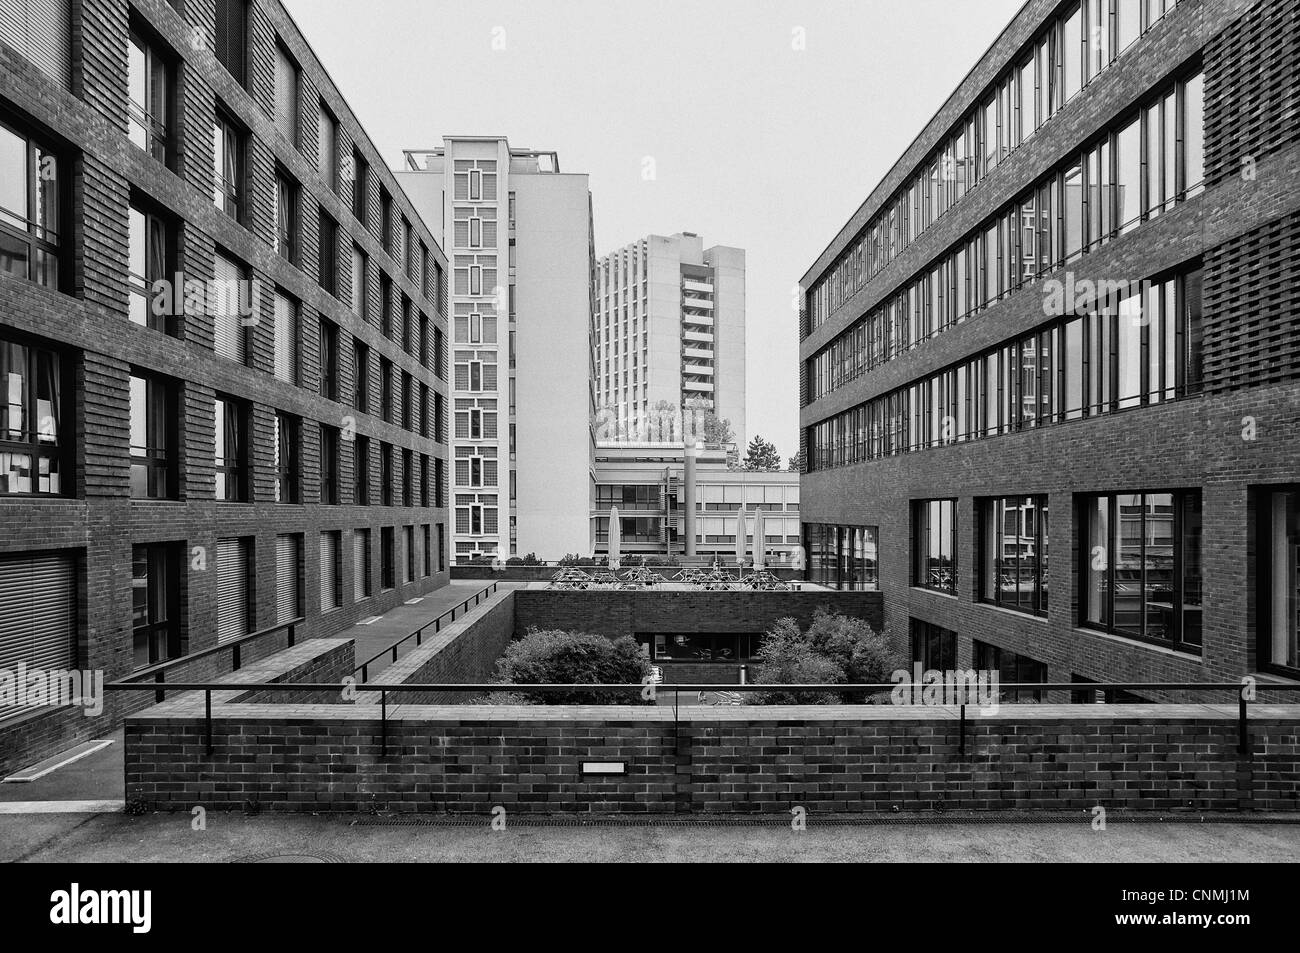 View of Zurich Universtiy buildings. Black and White version. - Stock Image